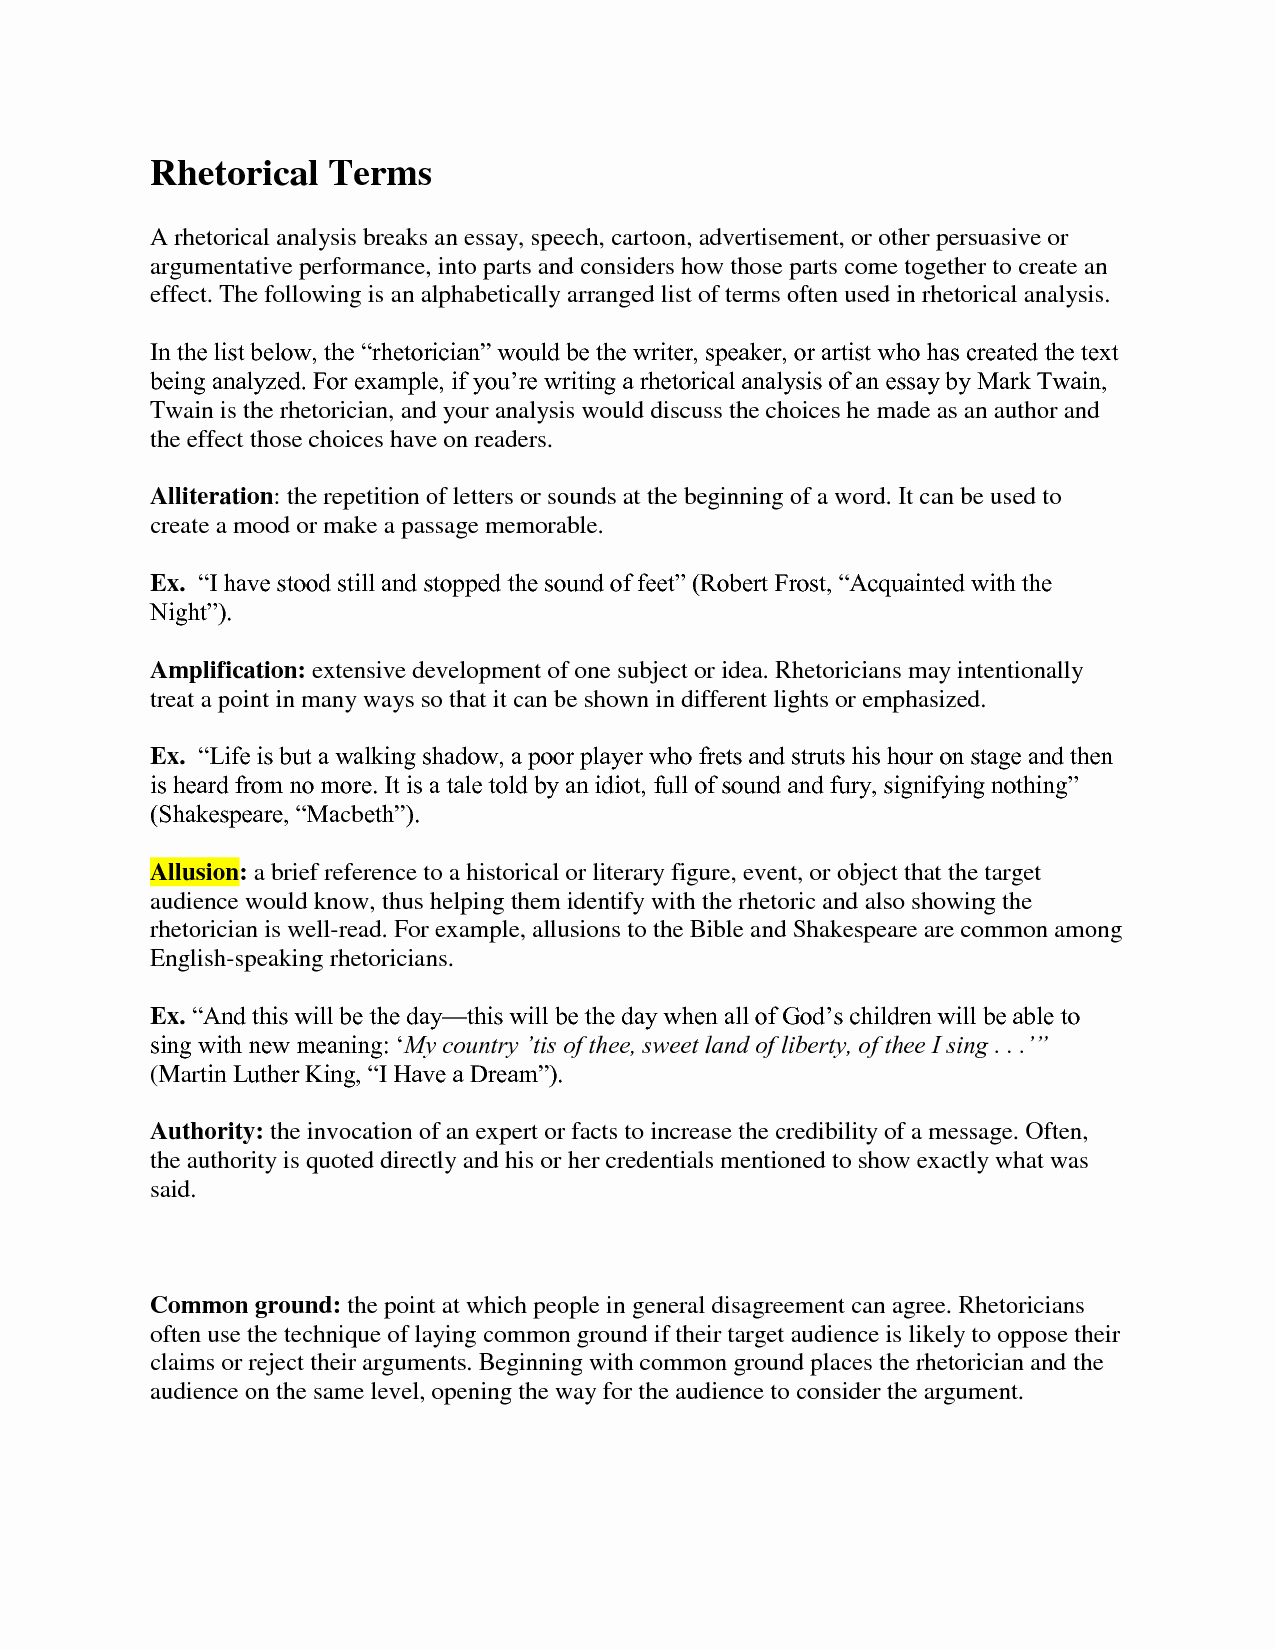 Rhetorical Analysis Outline Worksheet Awesome 13 Best Of Research Paper Process Worksheets How